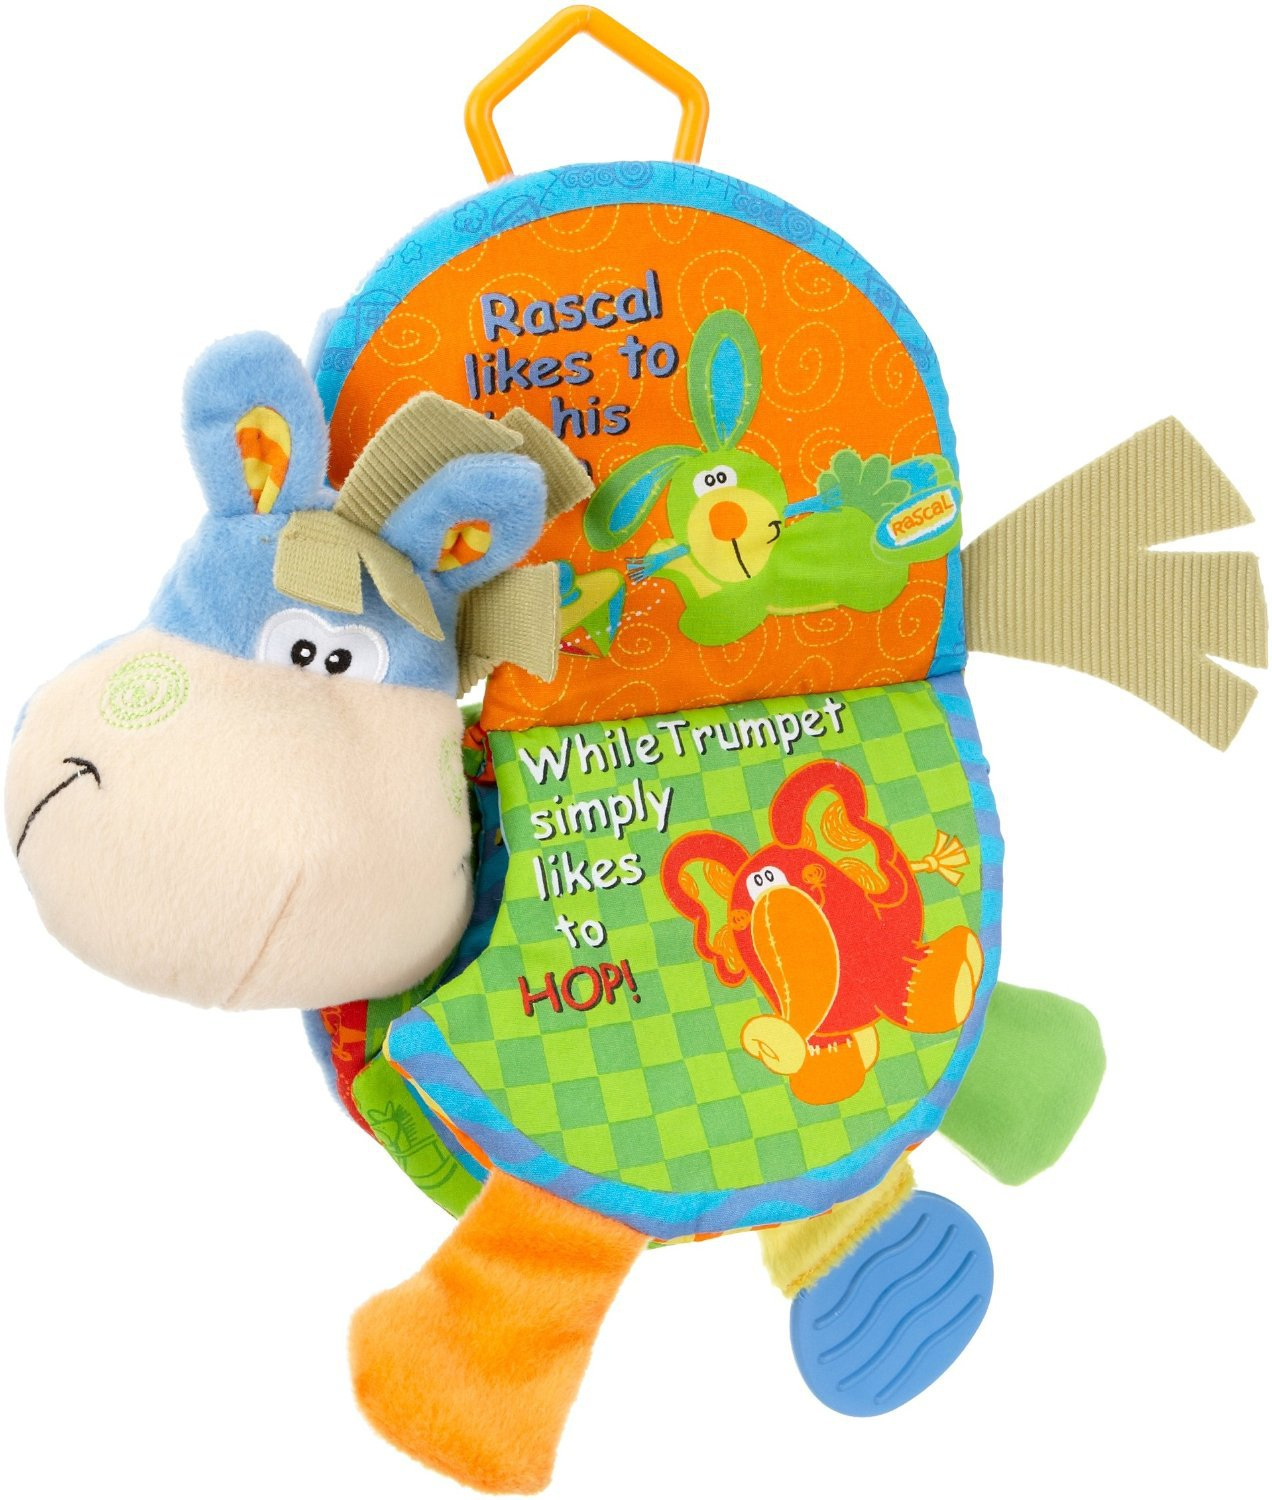 New Cute Donkey Animal Cloth BookBaby Cloth Book Rattles Teether Toys For Toddlers Learning Early Education Toys Christmas Gifts